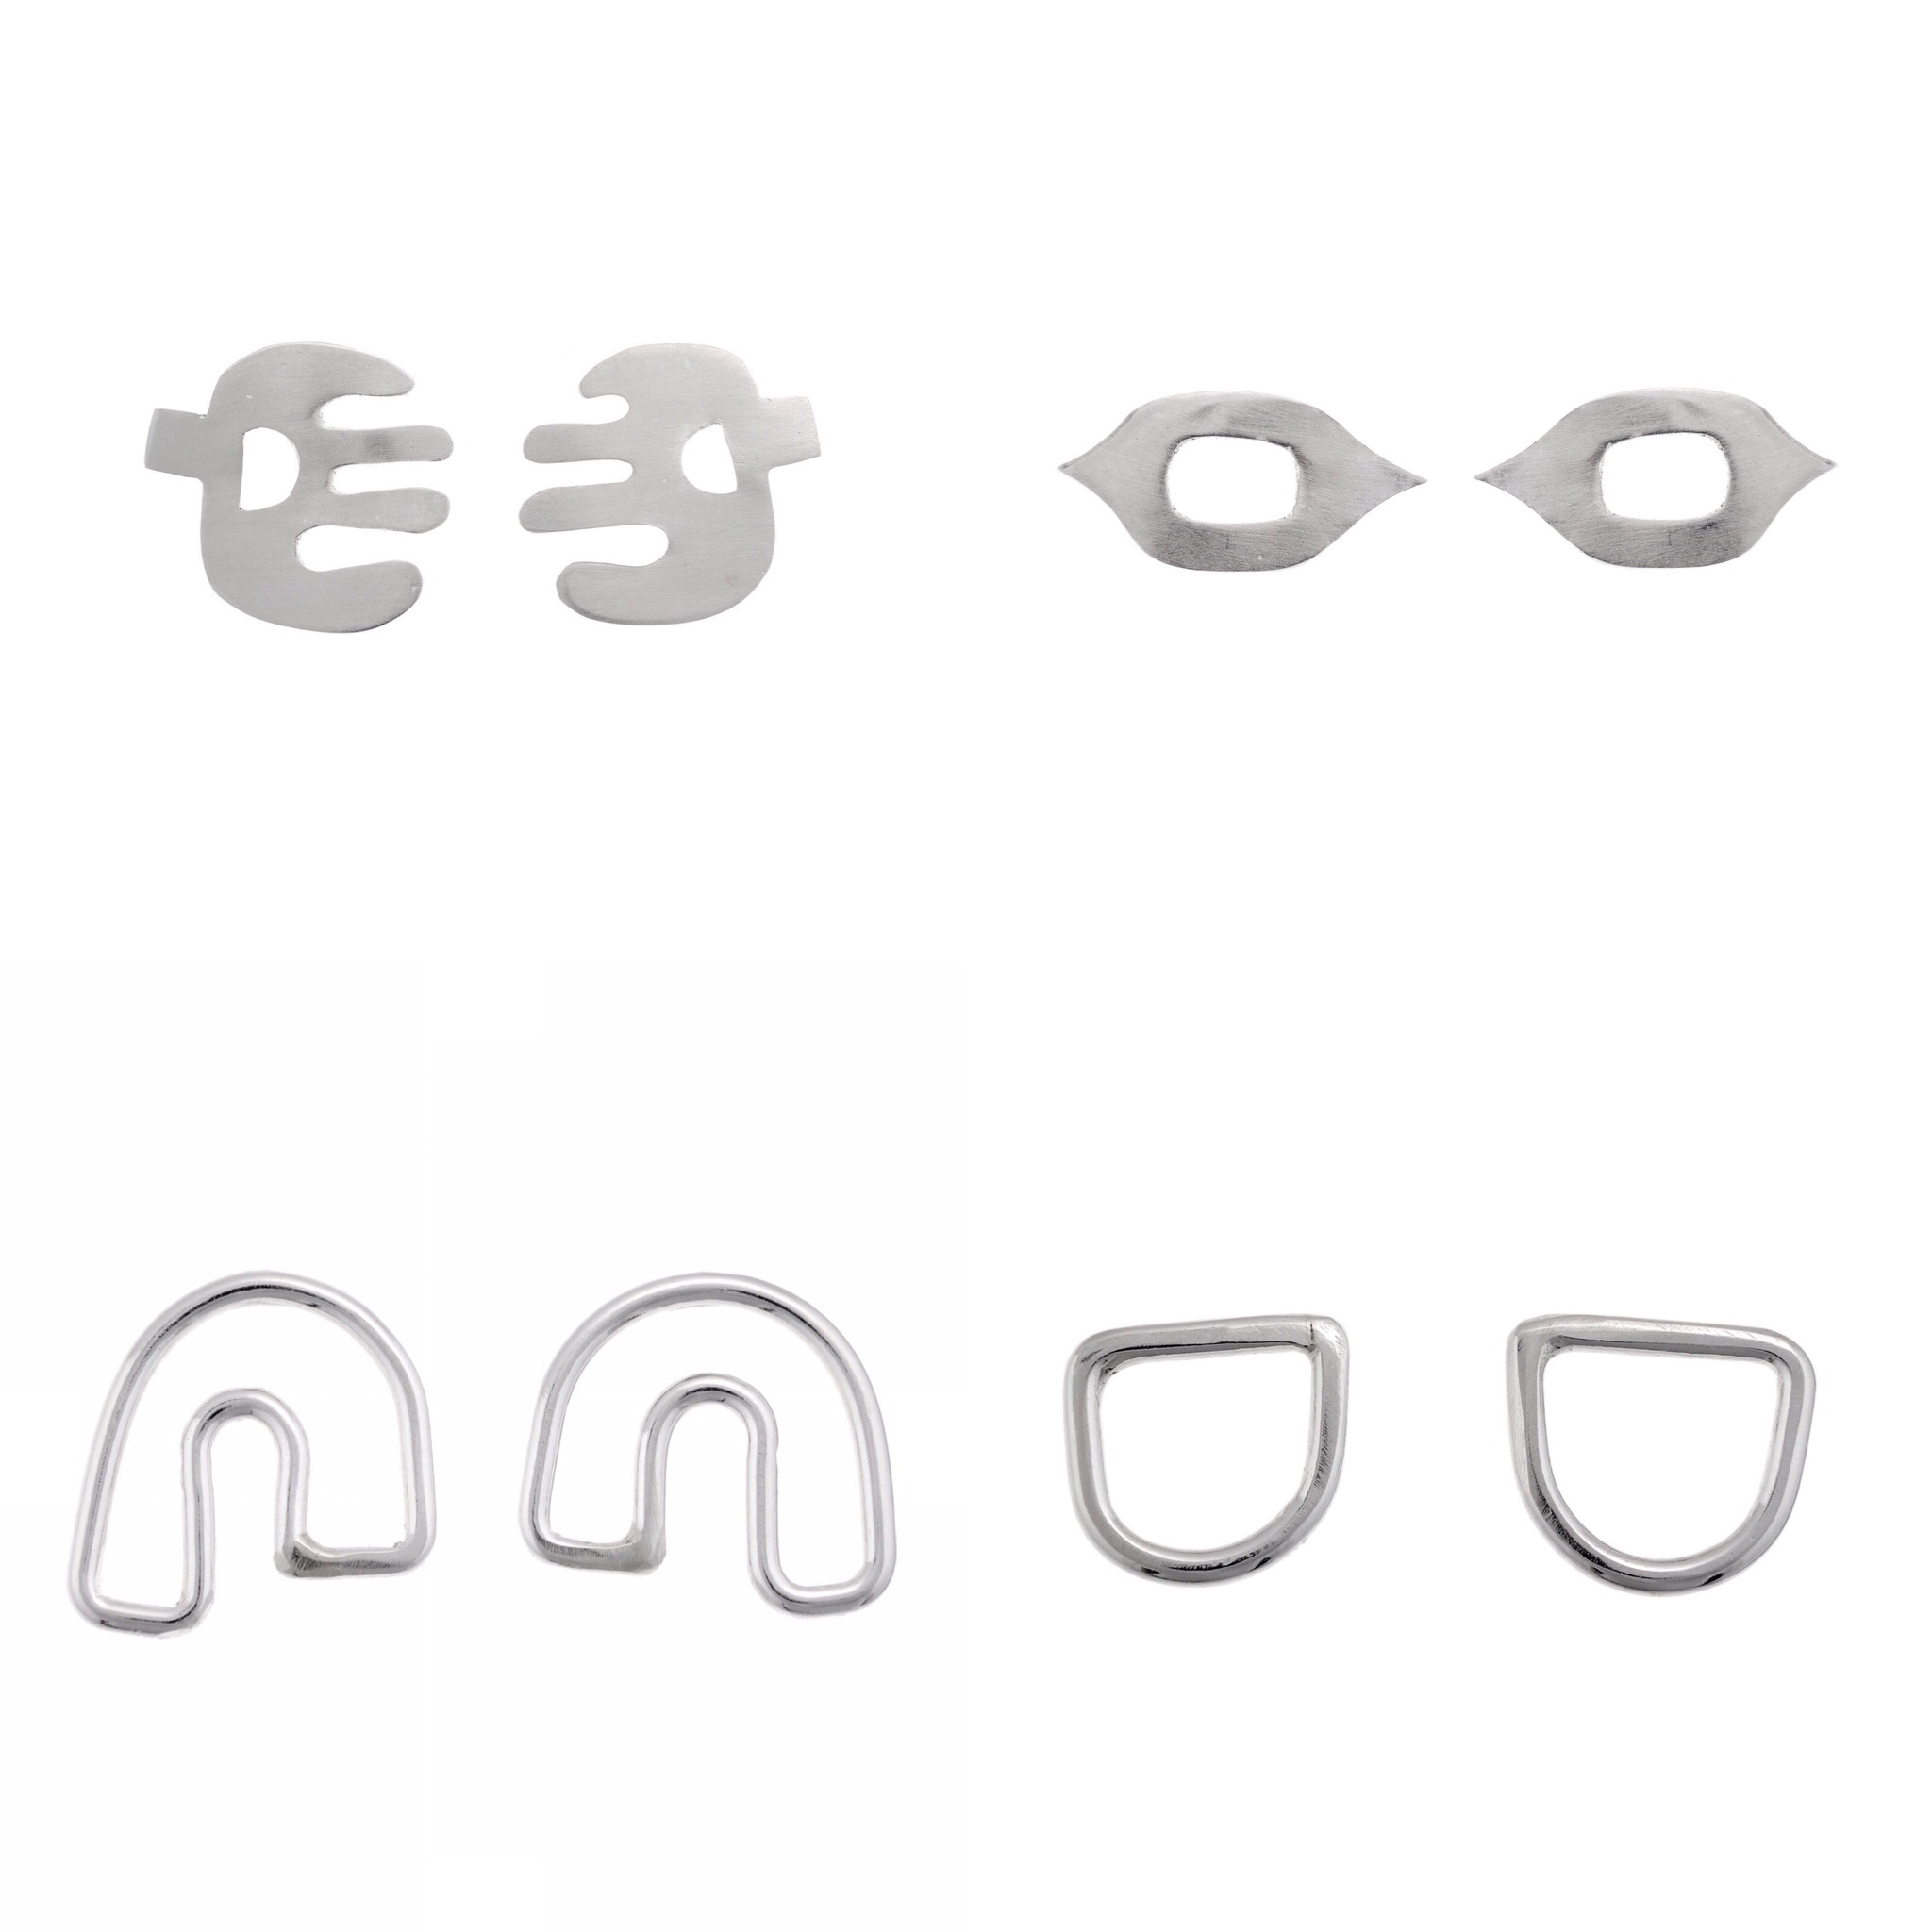 Shop The Mask Collection - Eco Silver Handmade Jewellery inspired by First Nations carved and painted masks.